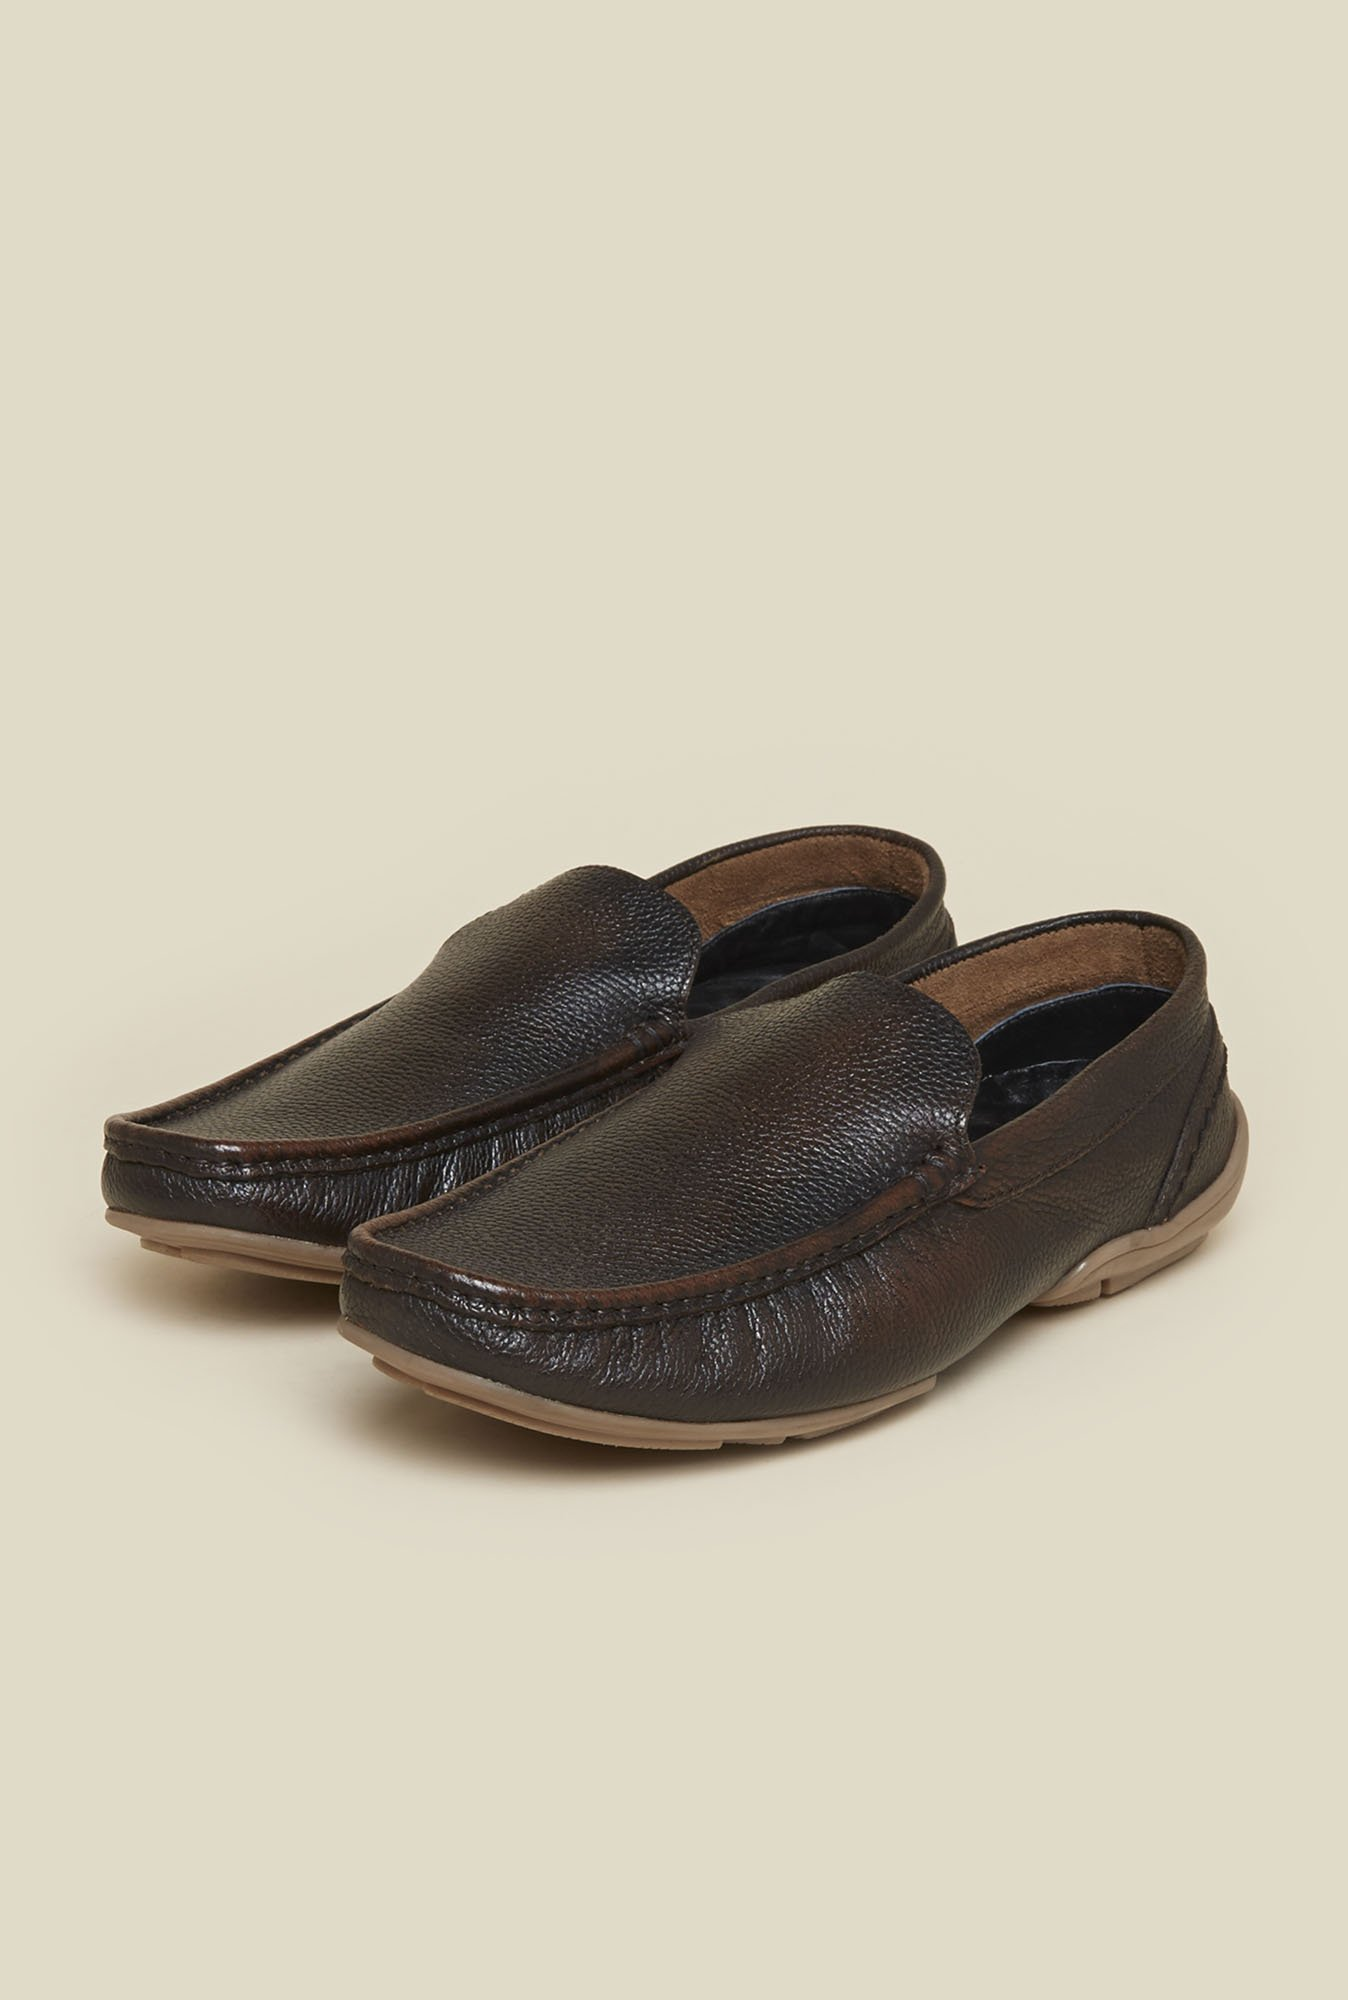 Mochi Brown Leather Moccasins